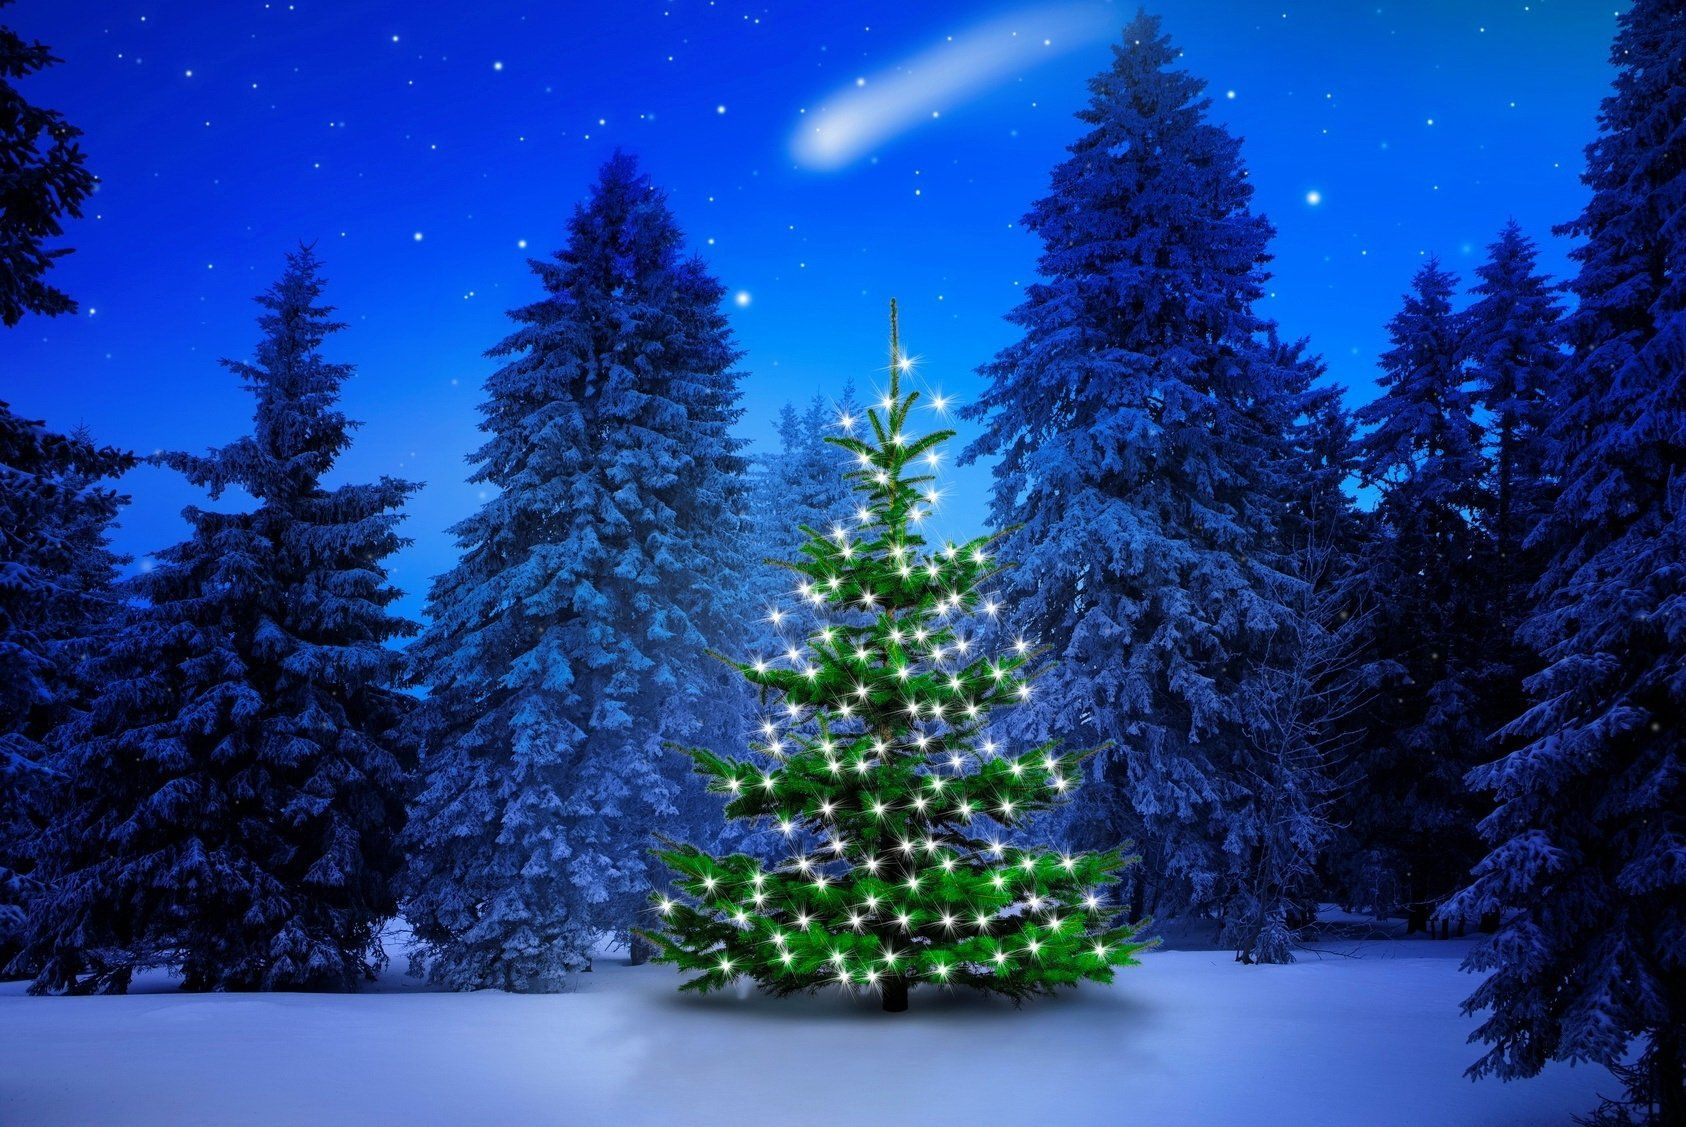 Lighted Tree In Winter Forest Computer Wallpapers Desktop Winter Wallpaper Desktop Christmas Tree Wallpaper Tree Wallpaper Phone